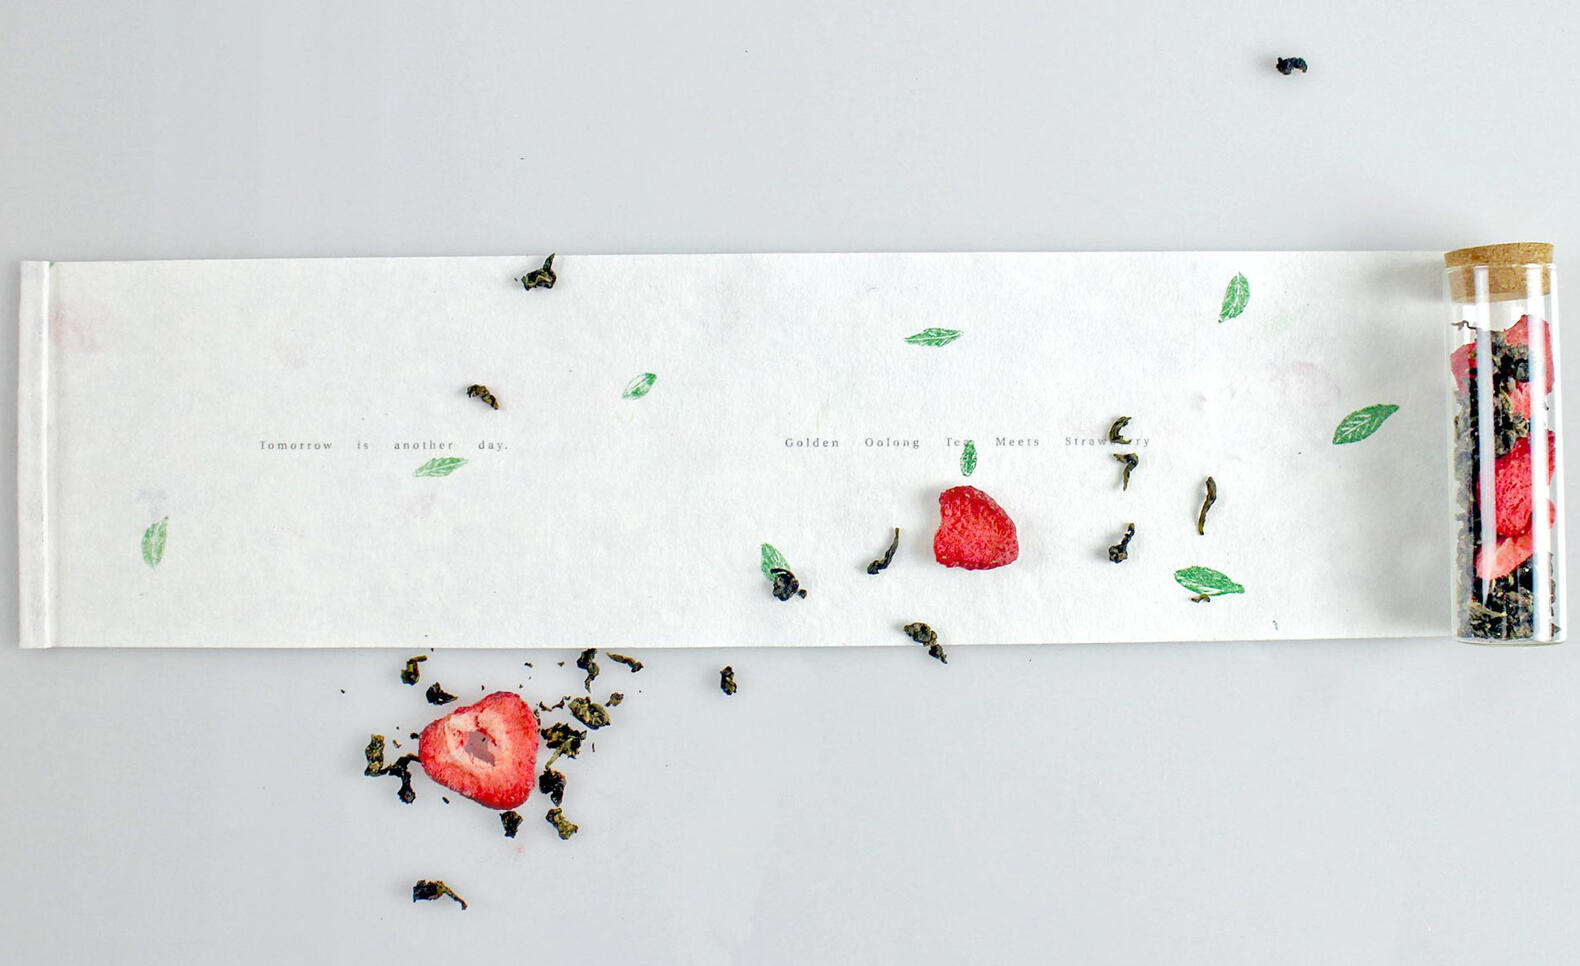 Photograph of a scroll, tea leaf, and strawberry ; Xingzi Liang